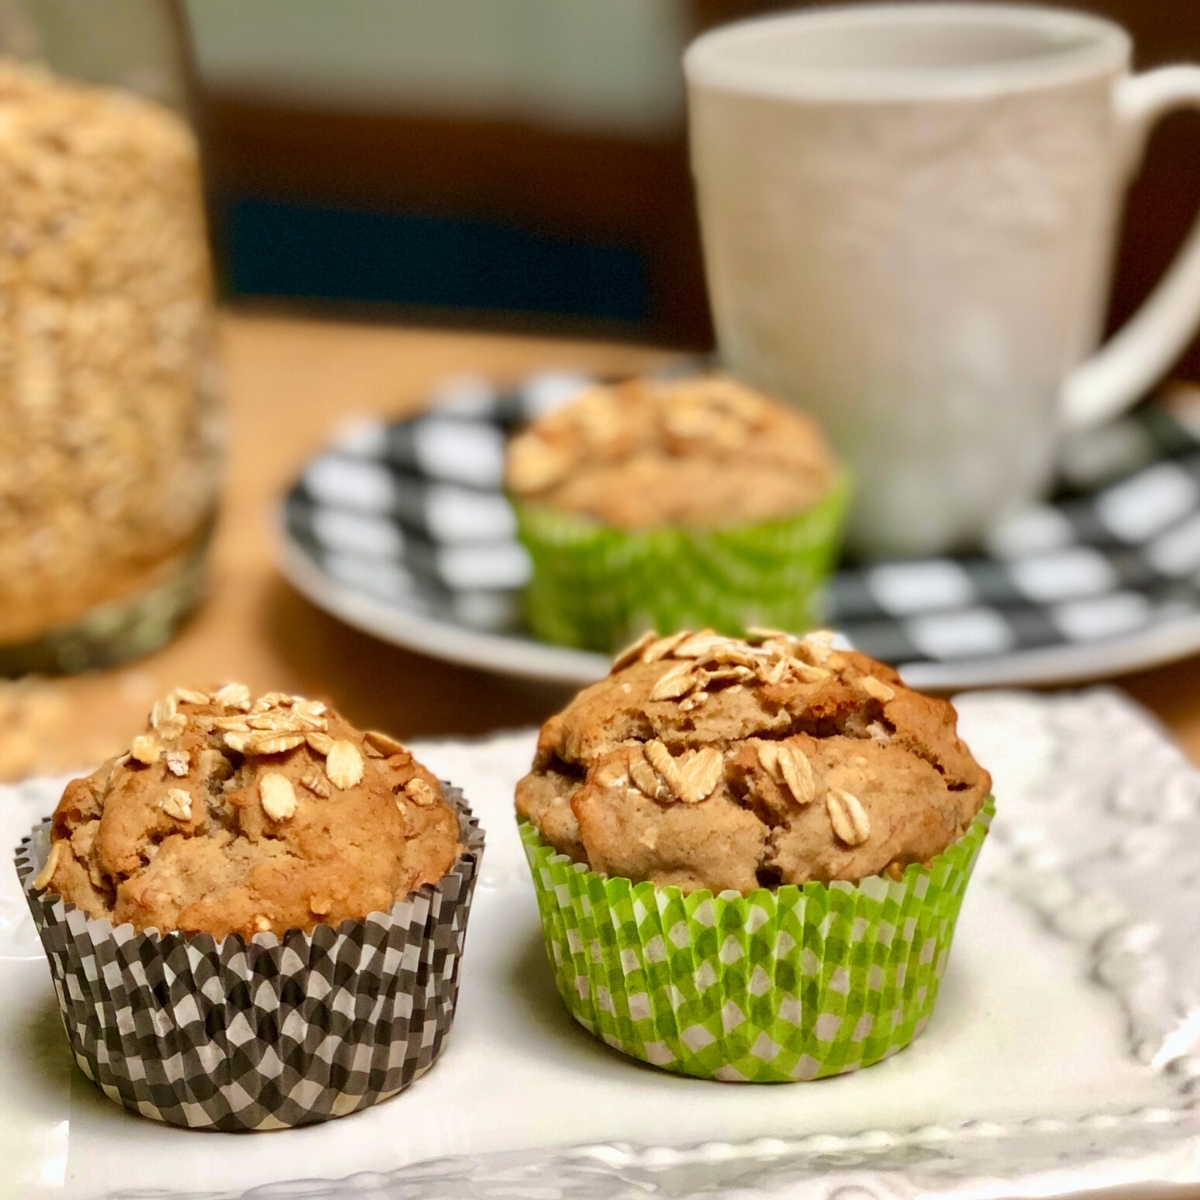 A plate with vegan oatmeal muffins.